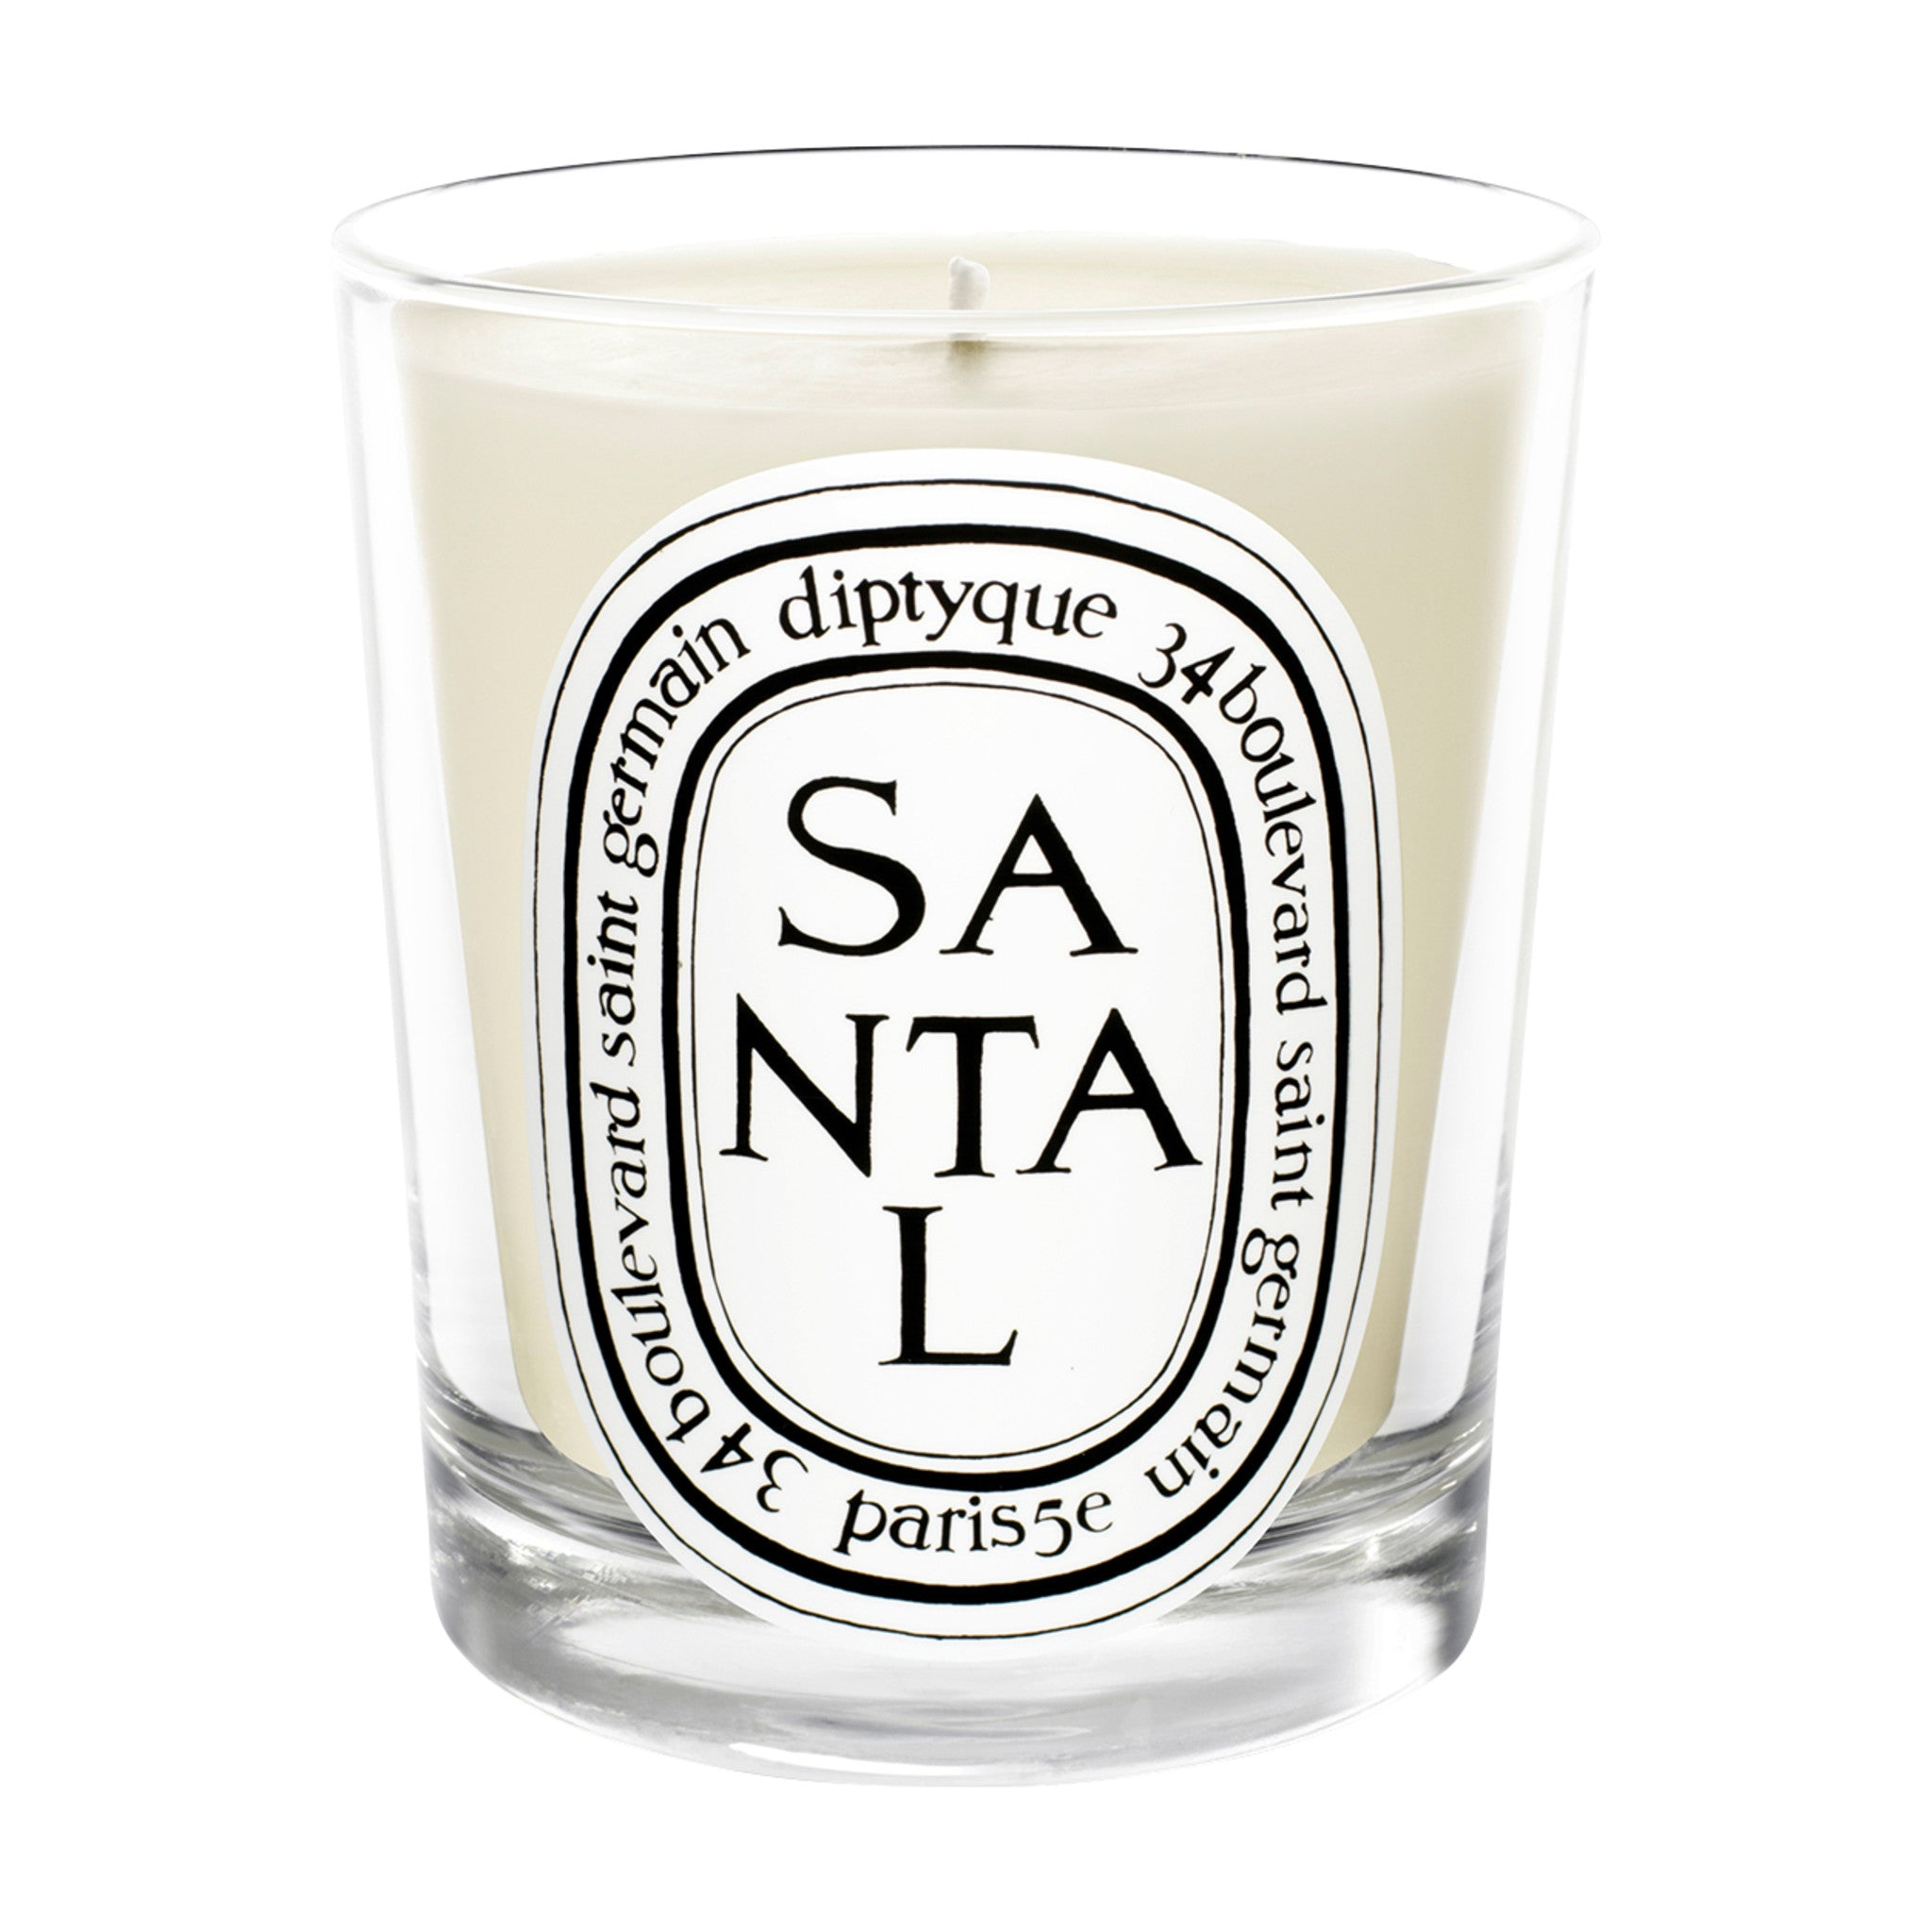 Santal / Sandalwood Candle